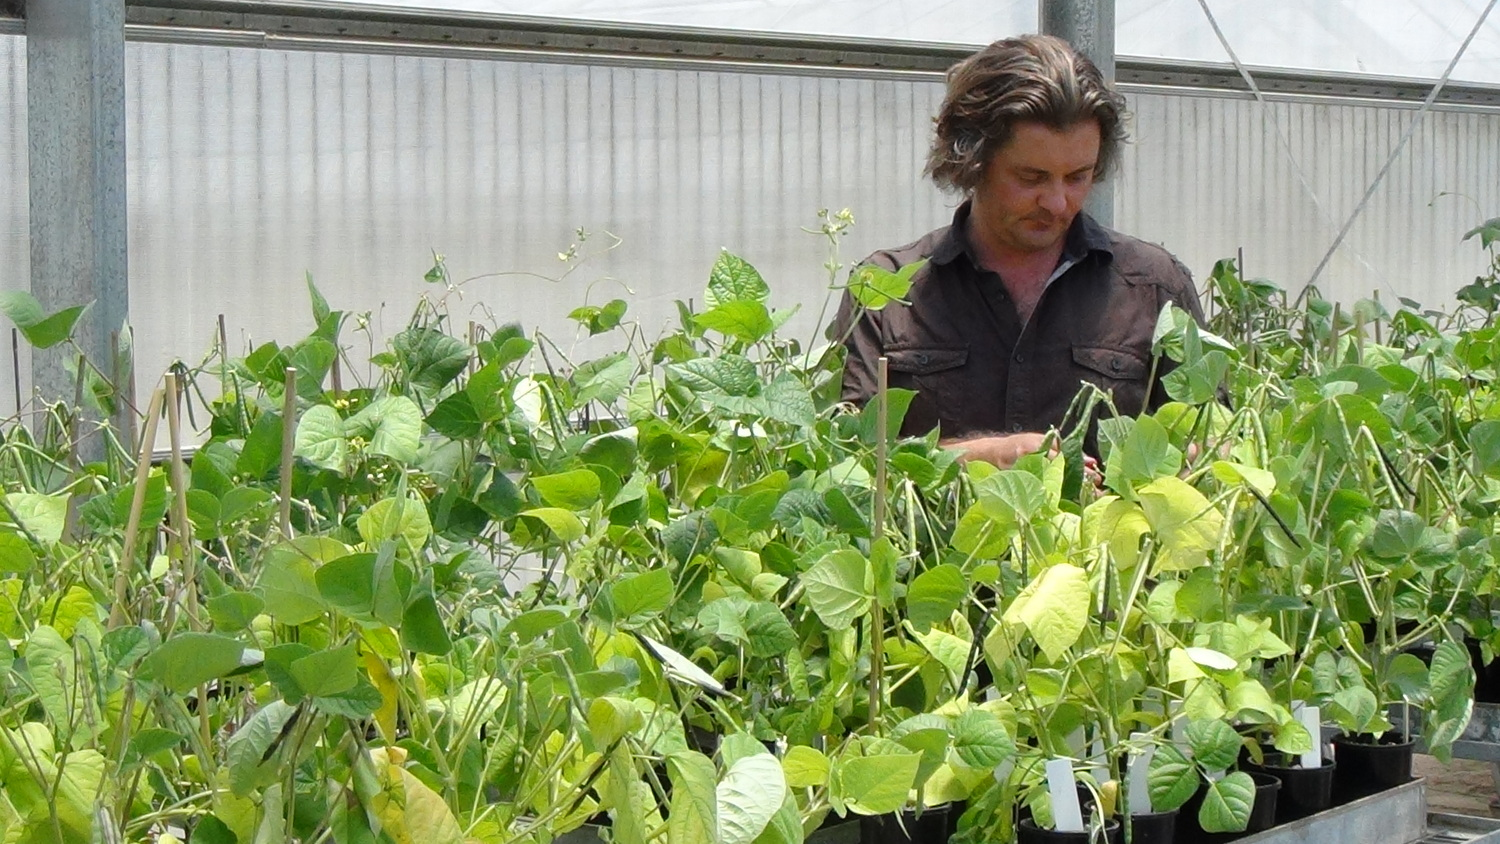 Col Douglas inspects mungbeans at Hermitage Research Station, Warwick